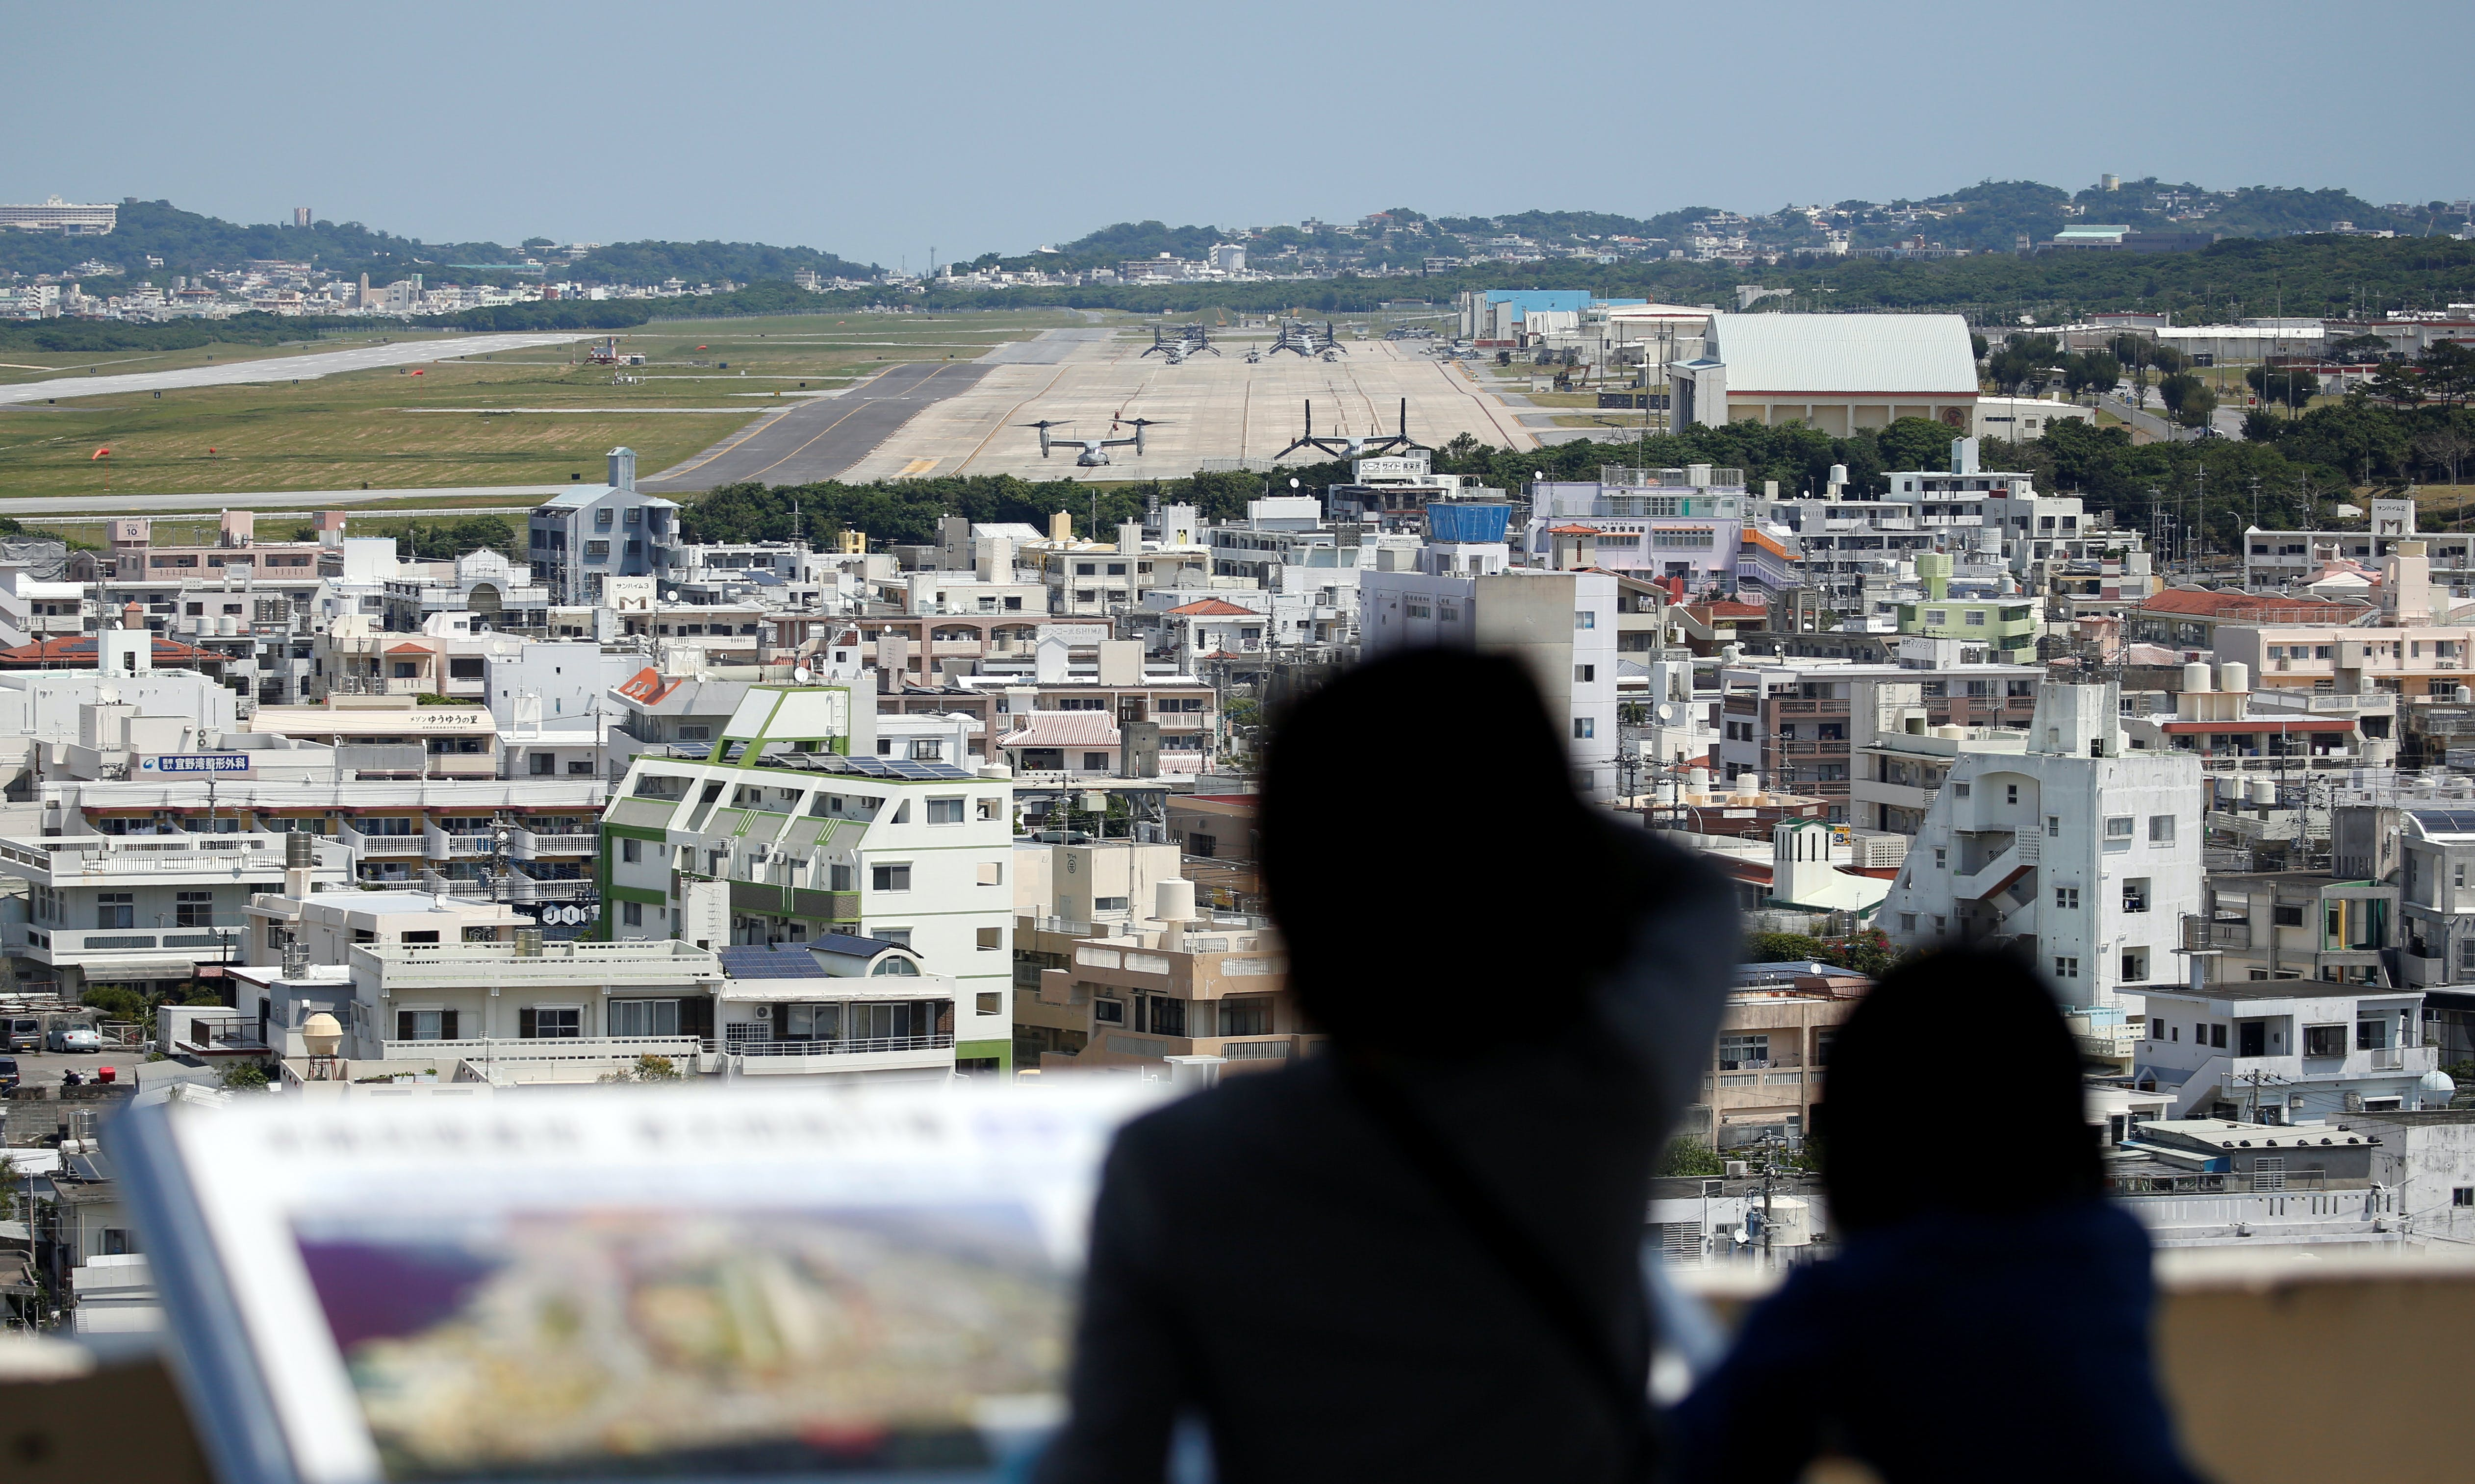 JAPAN: Okinawa Referendum Set to Decide Future of US Military Presence